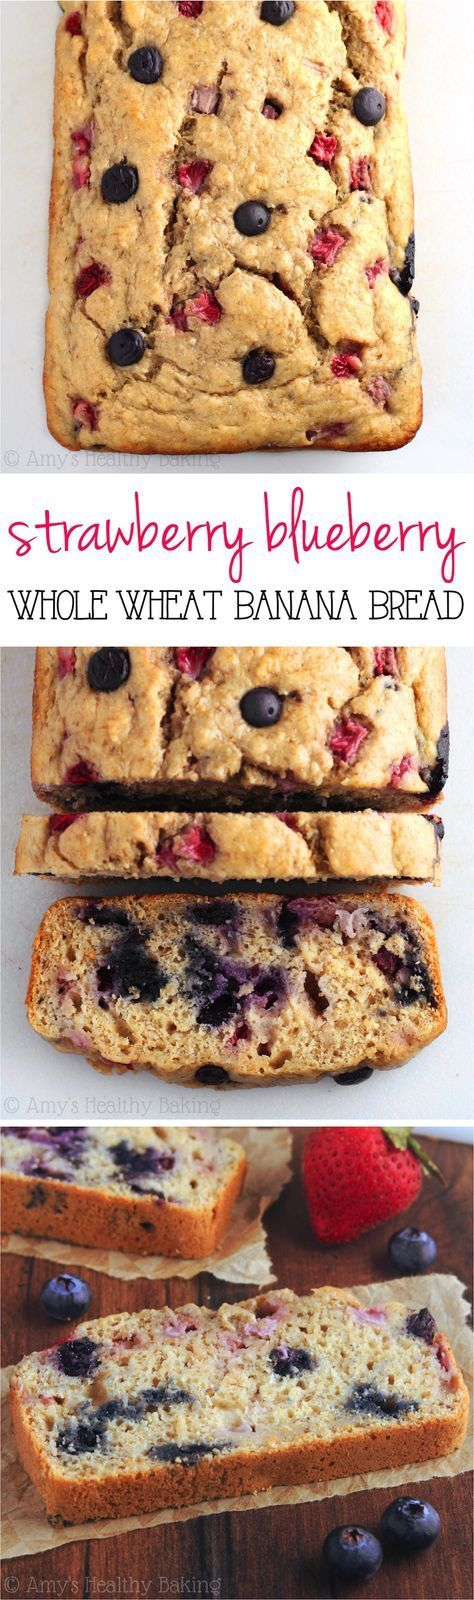 Whole Wheat Strawberry Blueberry Banana Bread -- an easy clean-eating breakfast or snack! This healthy recipe is full of fresh berries and barely 120 calories!